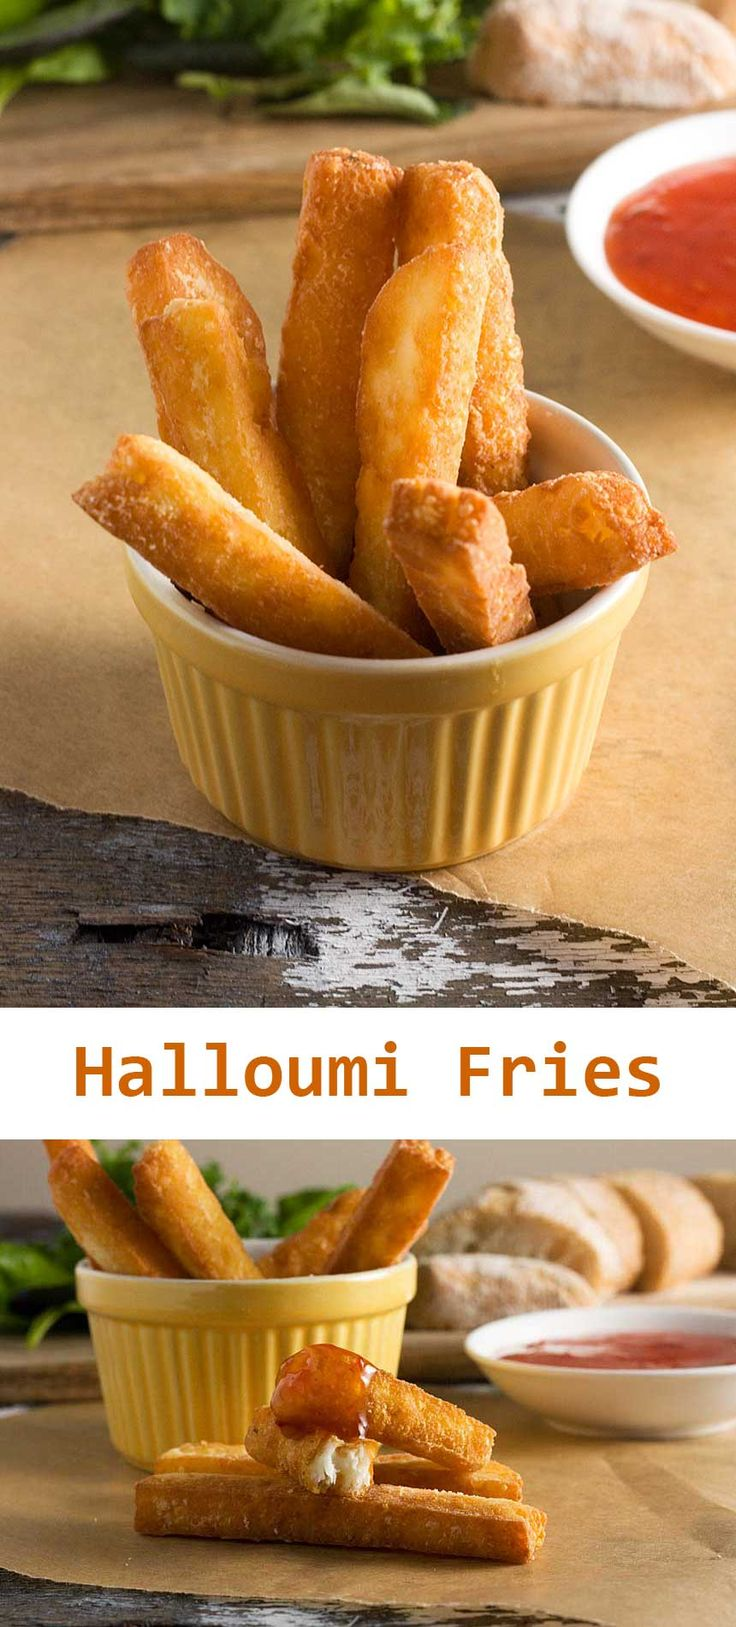 Crispy halloumi fries (and dips!)